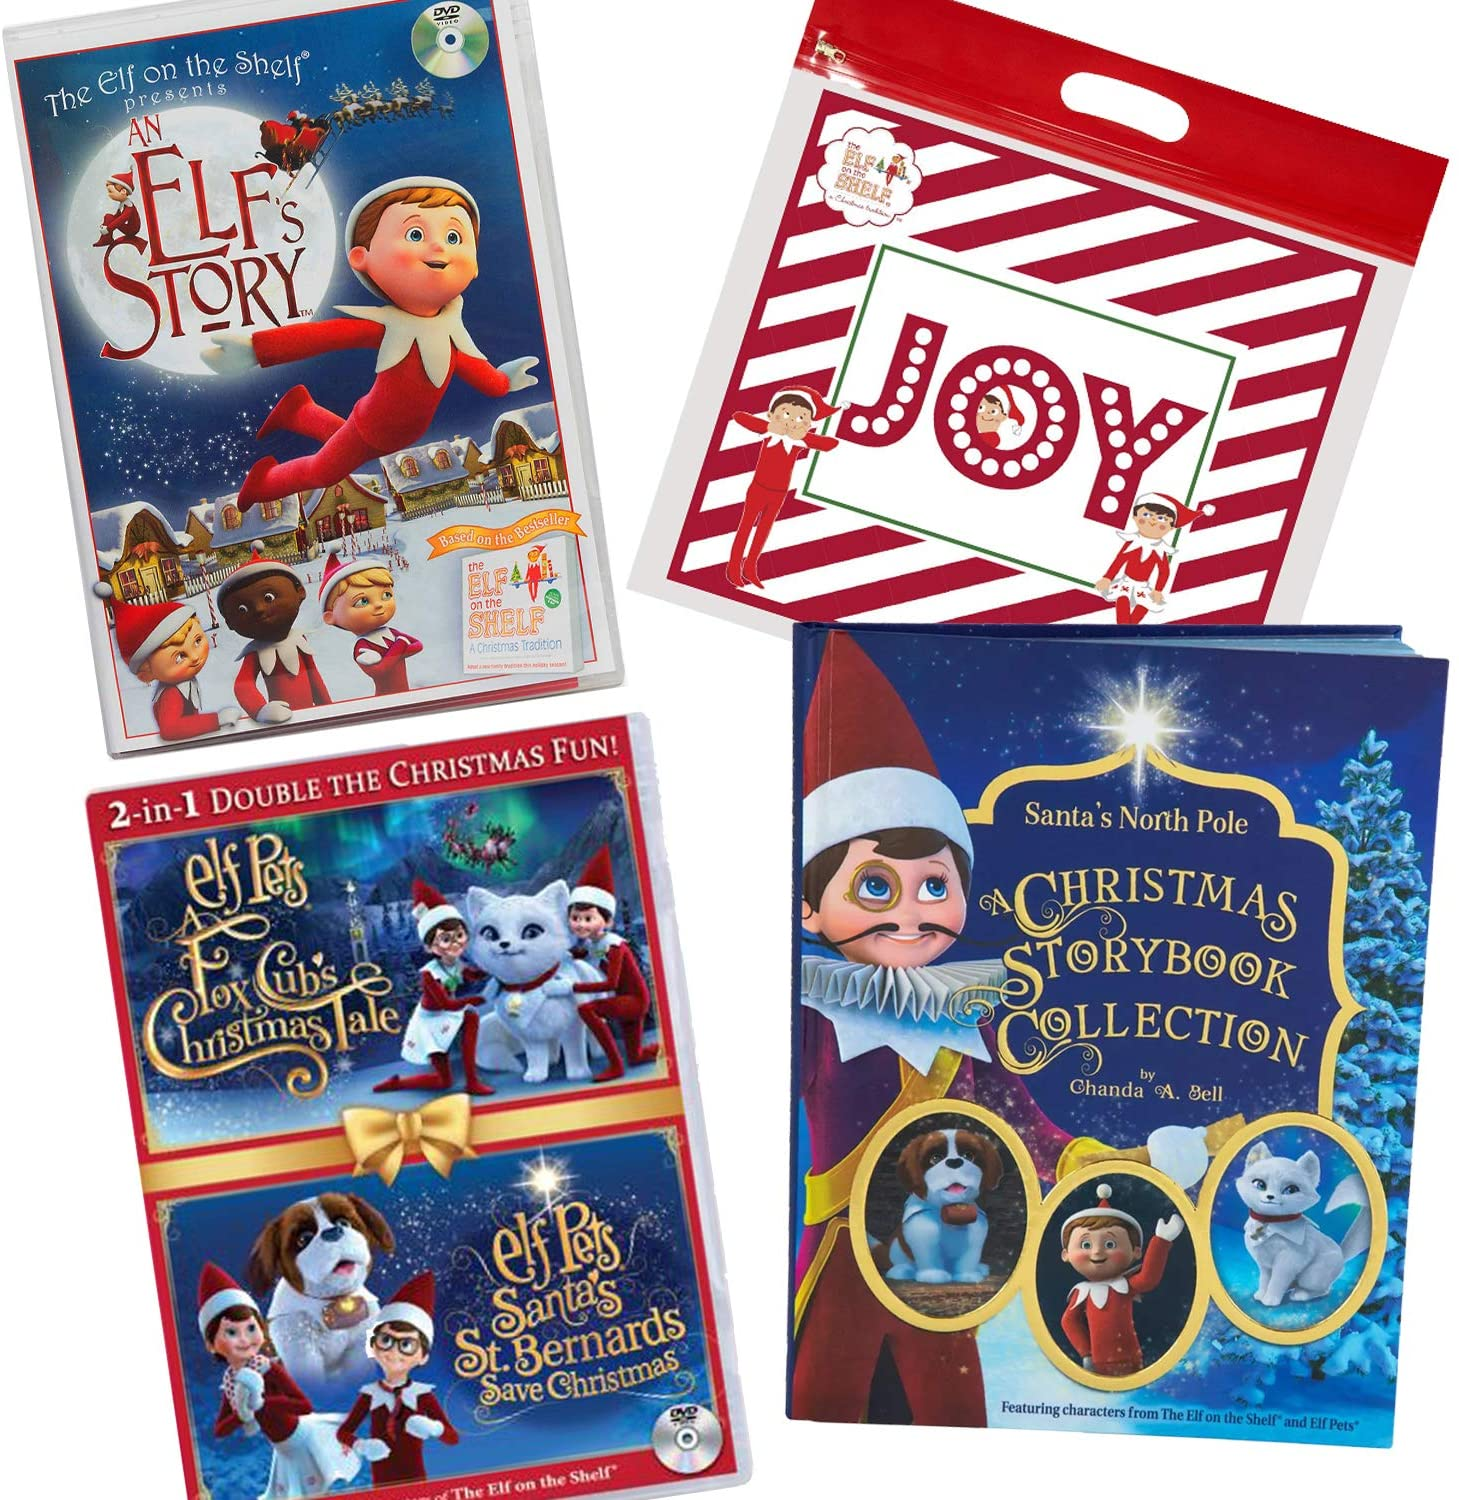 The Elf on the Shelf DVD and Book Bundle of 3: an Elf's Story, Elf Pet's Fox Cub and St. Bernard Multipack, and A Christmas Storybook Collection with Joy Bag